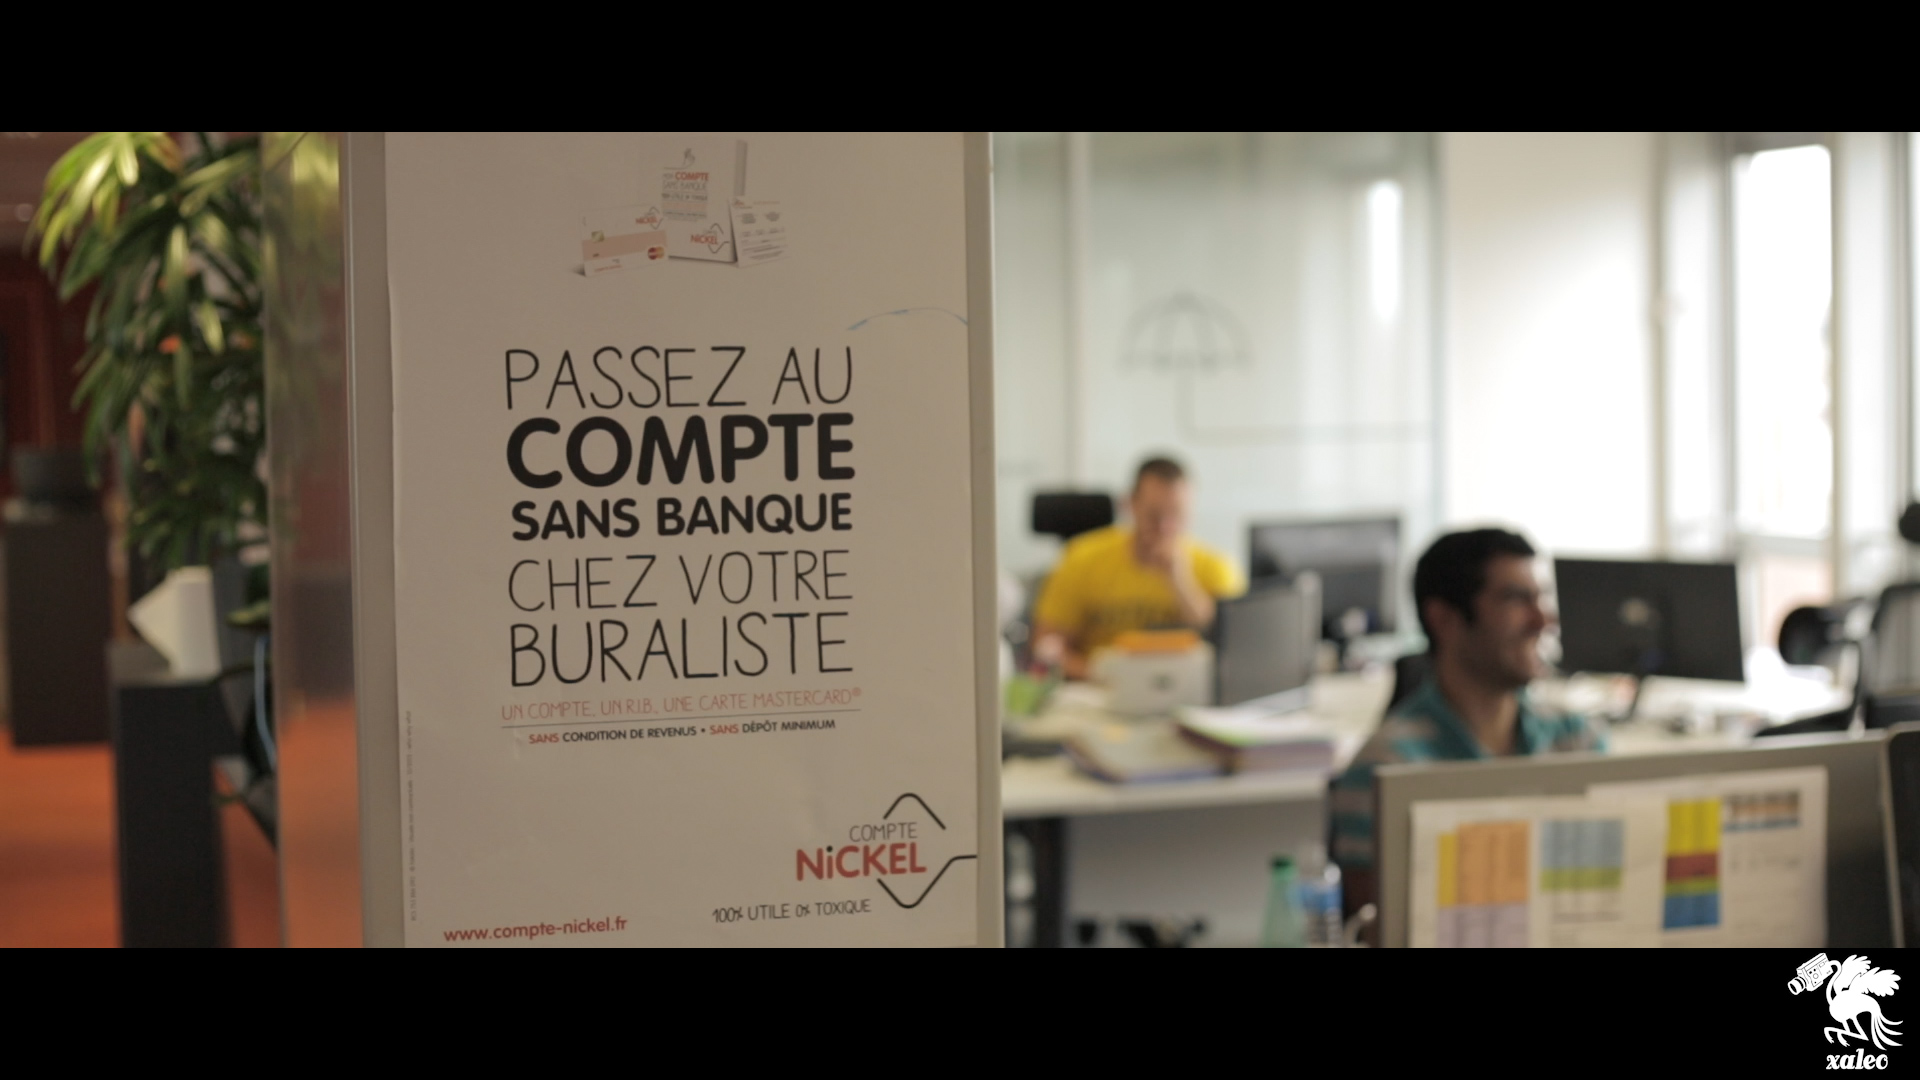 production-video-xaleo-studio-leo-meslet-compte-nickel-bnp-paribas-agence